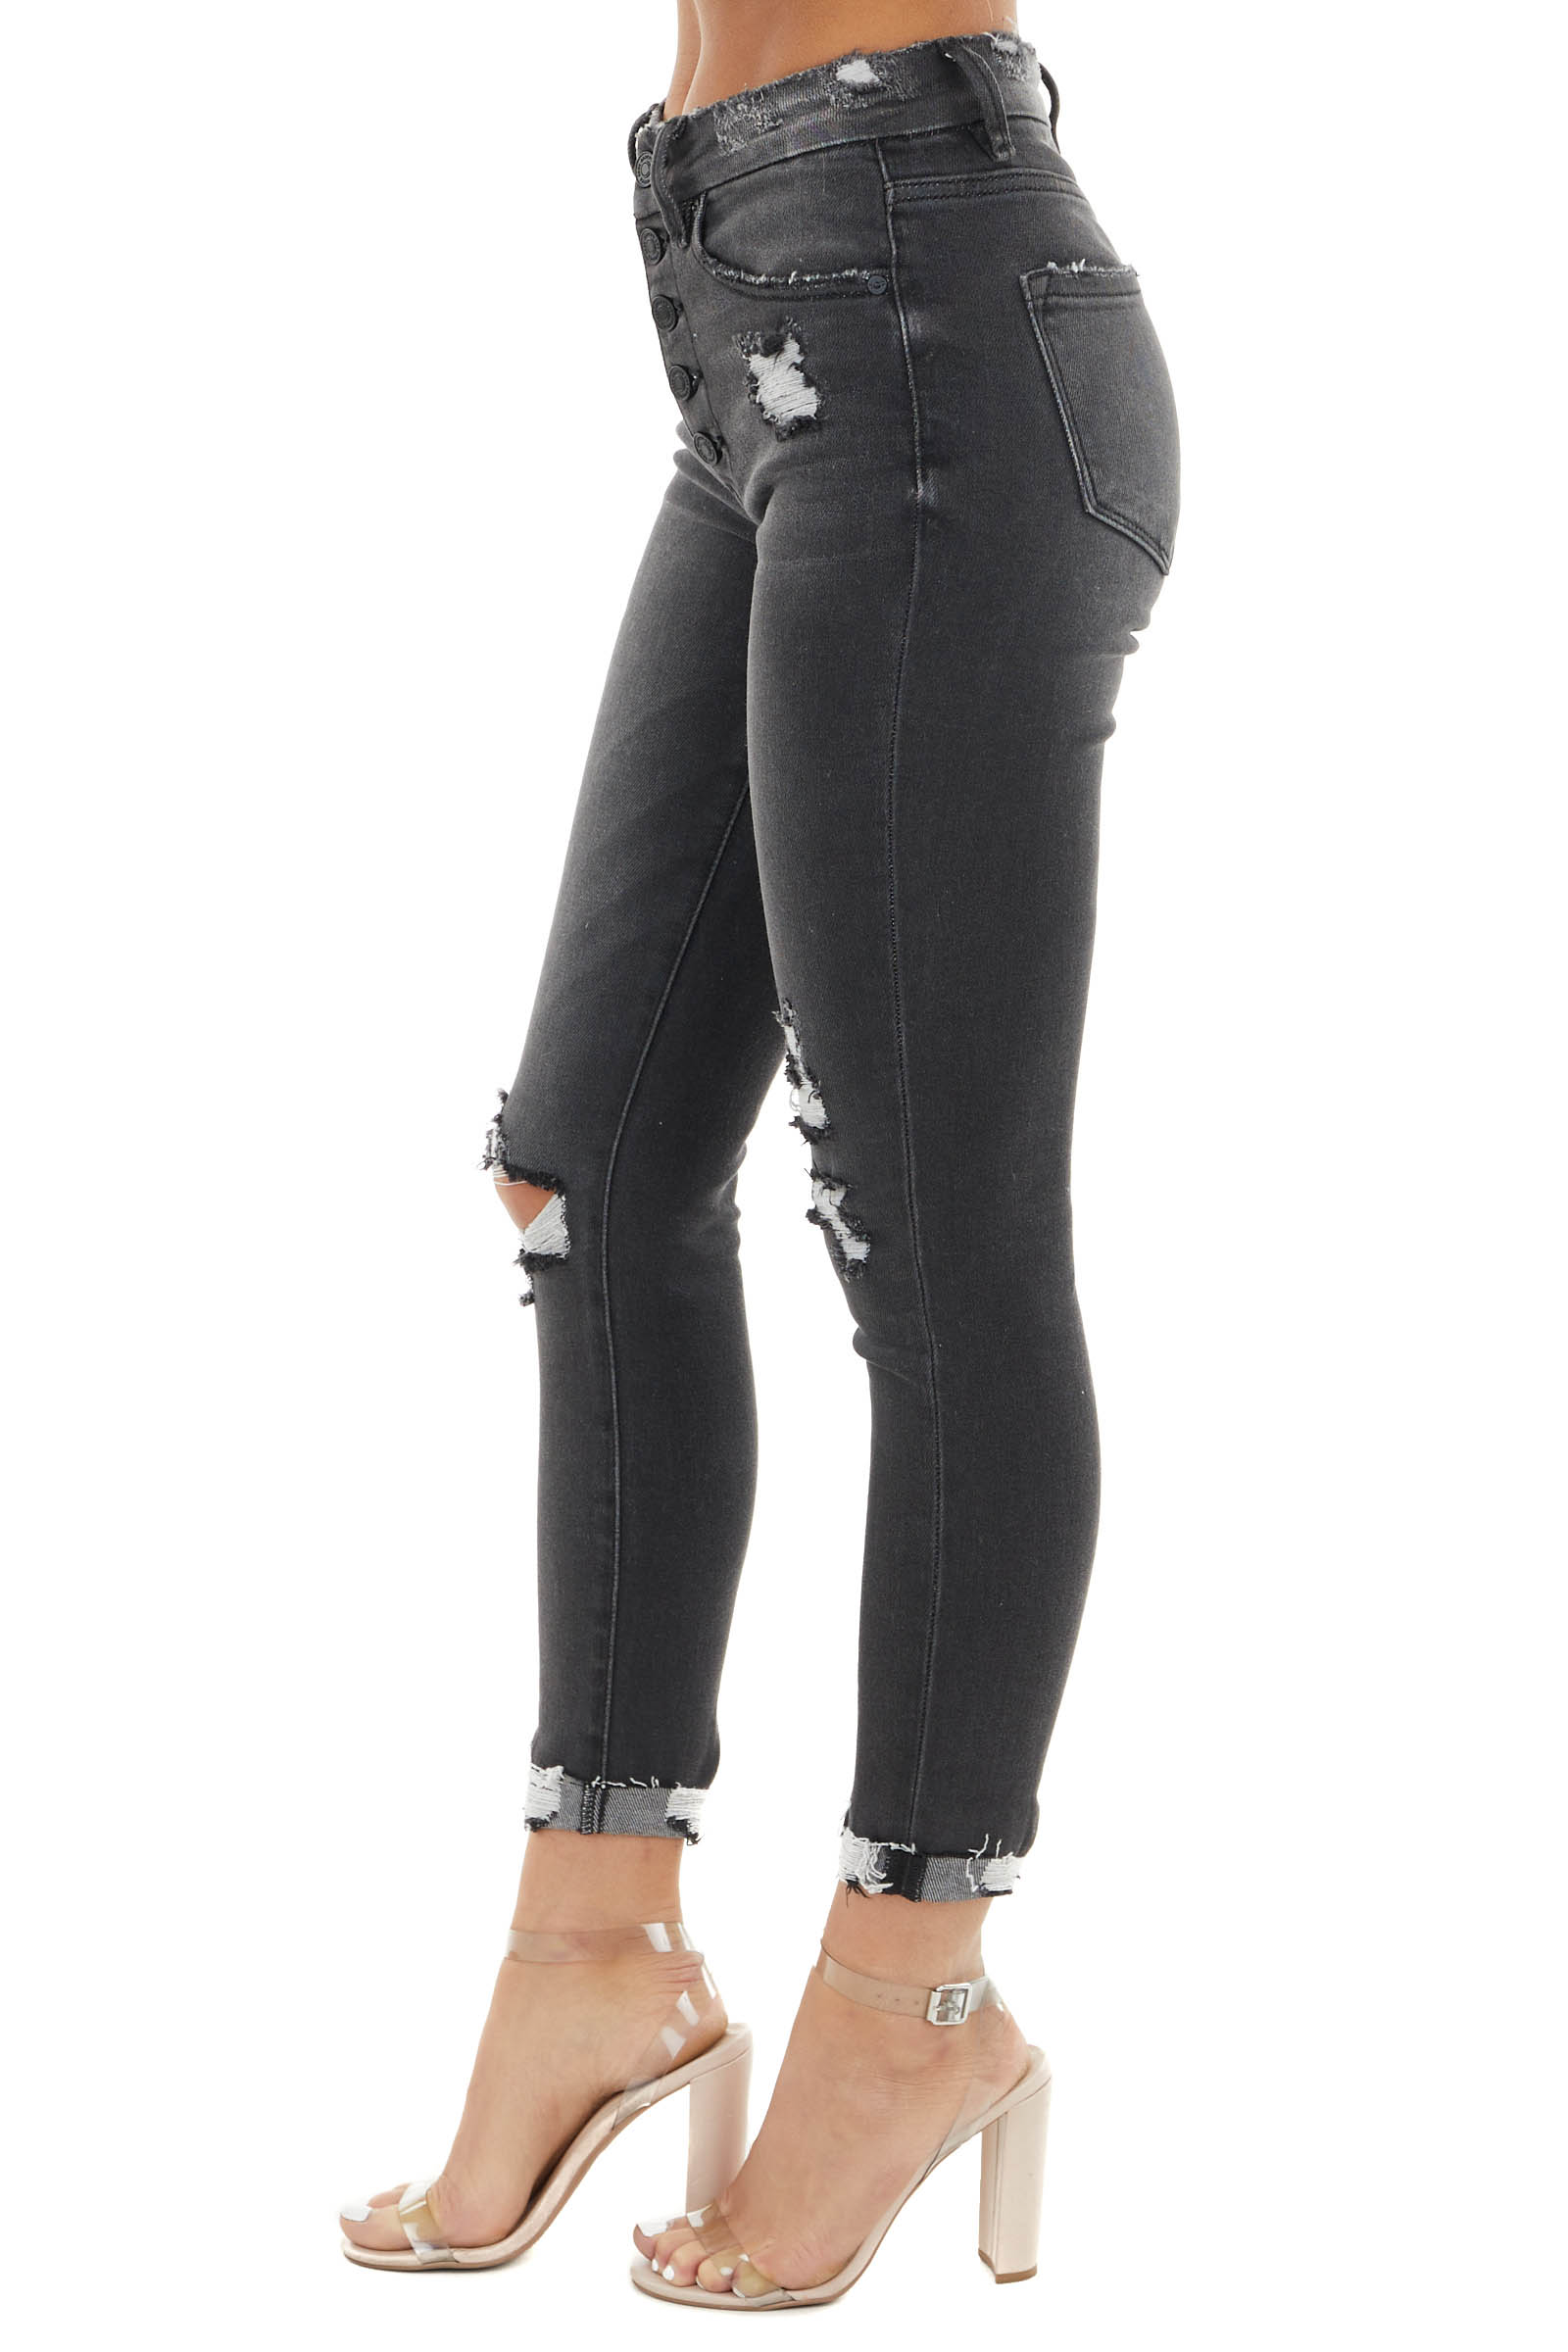 Faded Black High Rise Skinny Distressed Button Up Jeans